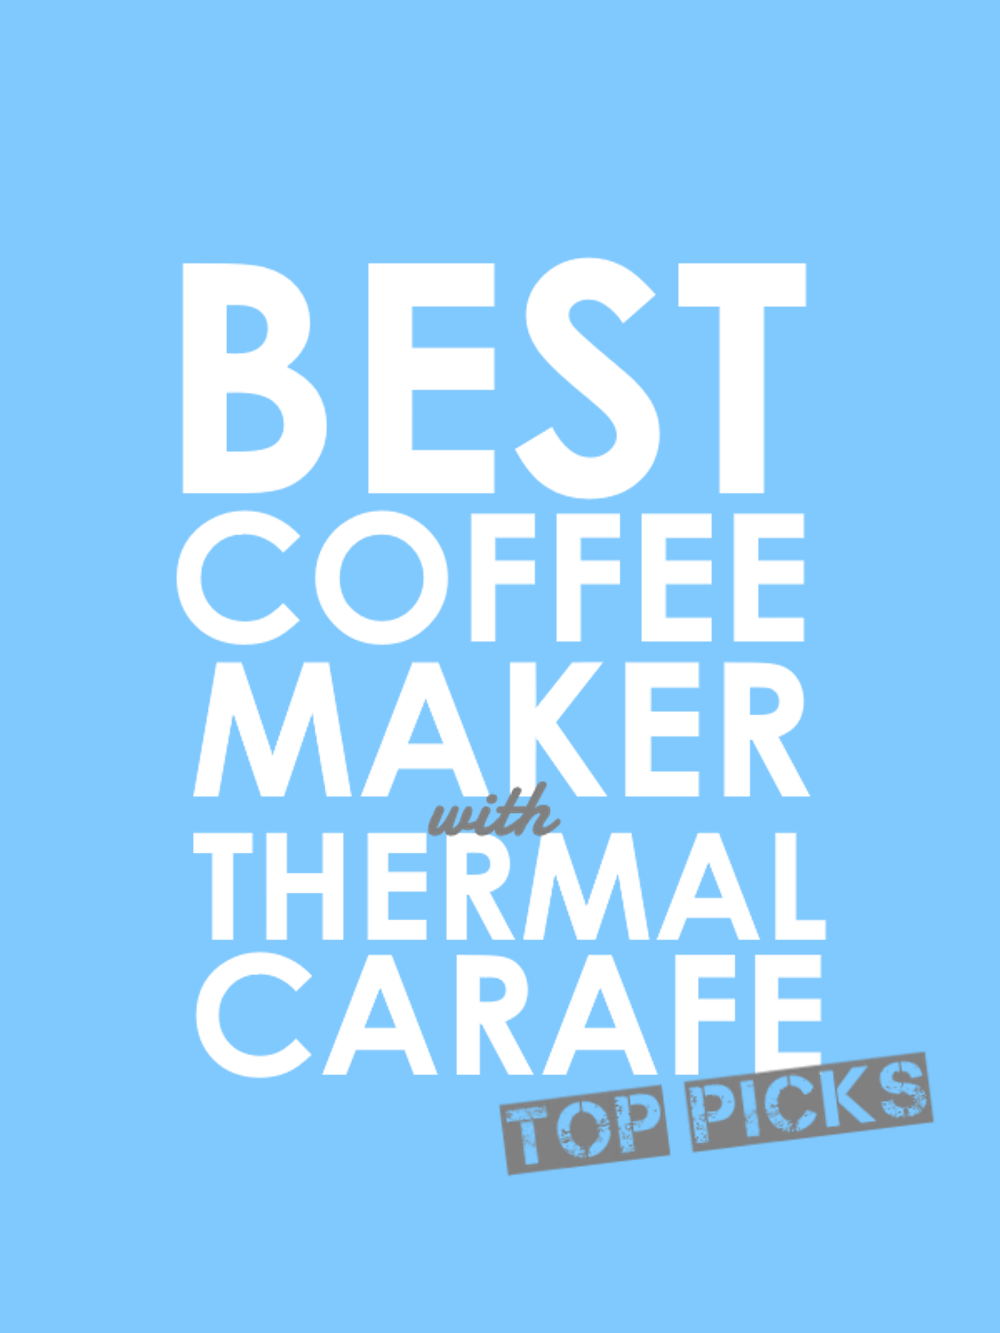 Best Coffee Maker with Thermal Carafe Top Picks